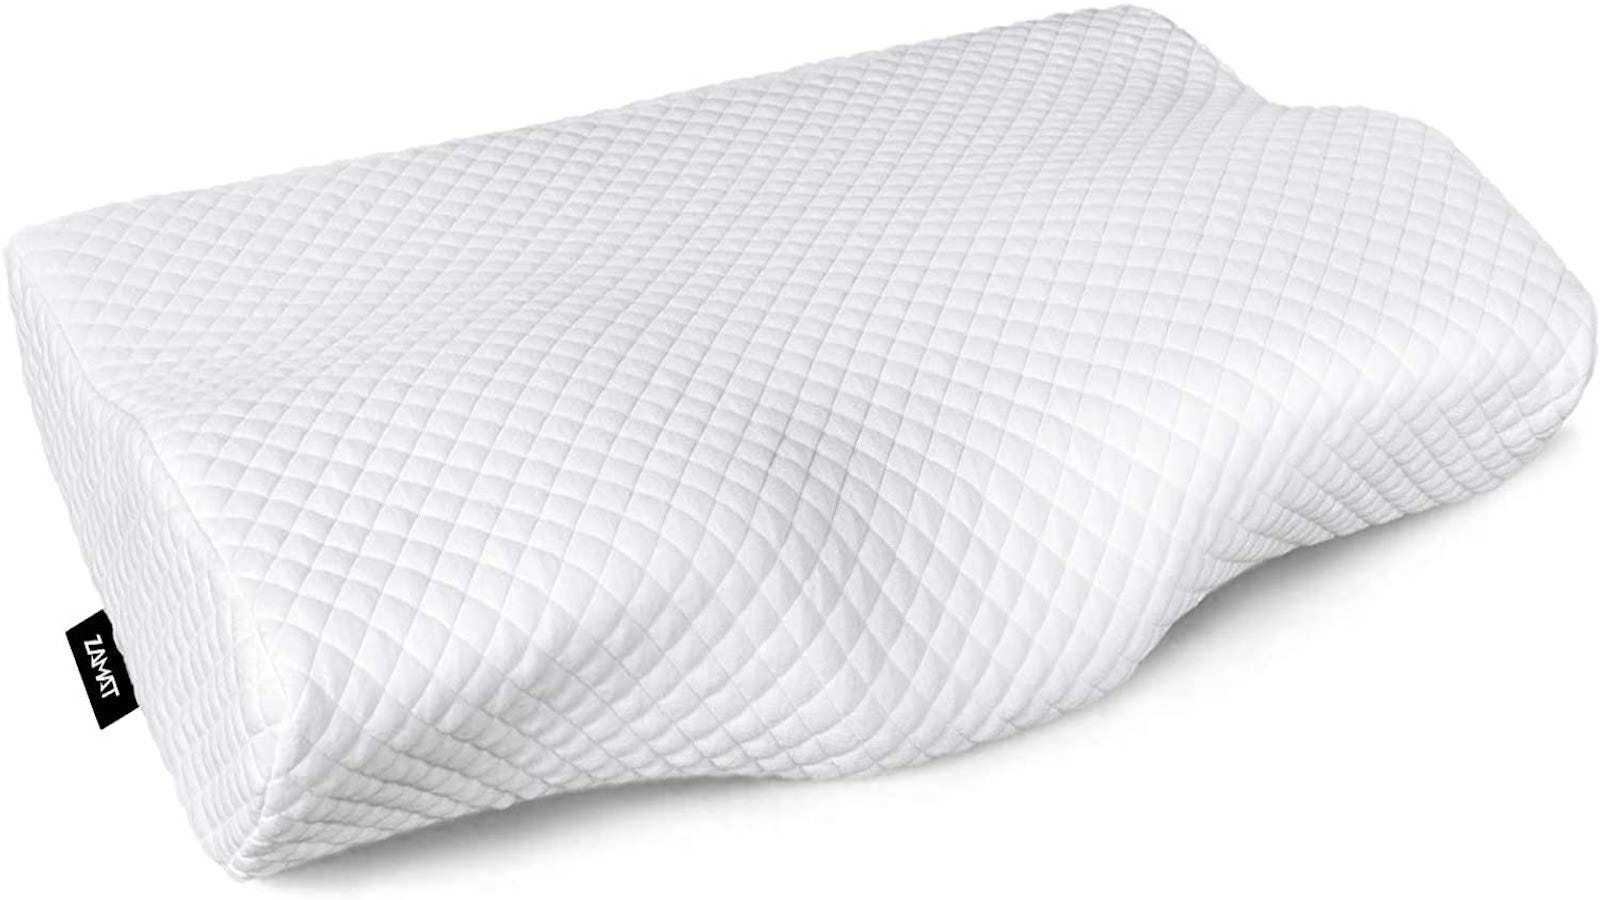 textured, cervical shaped memory foam pillow